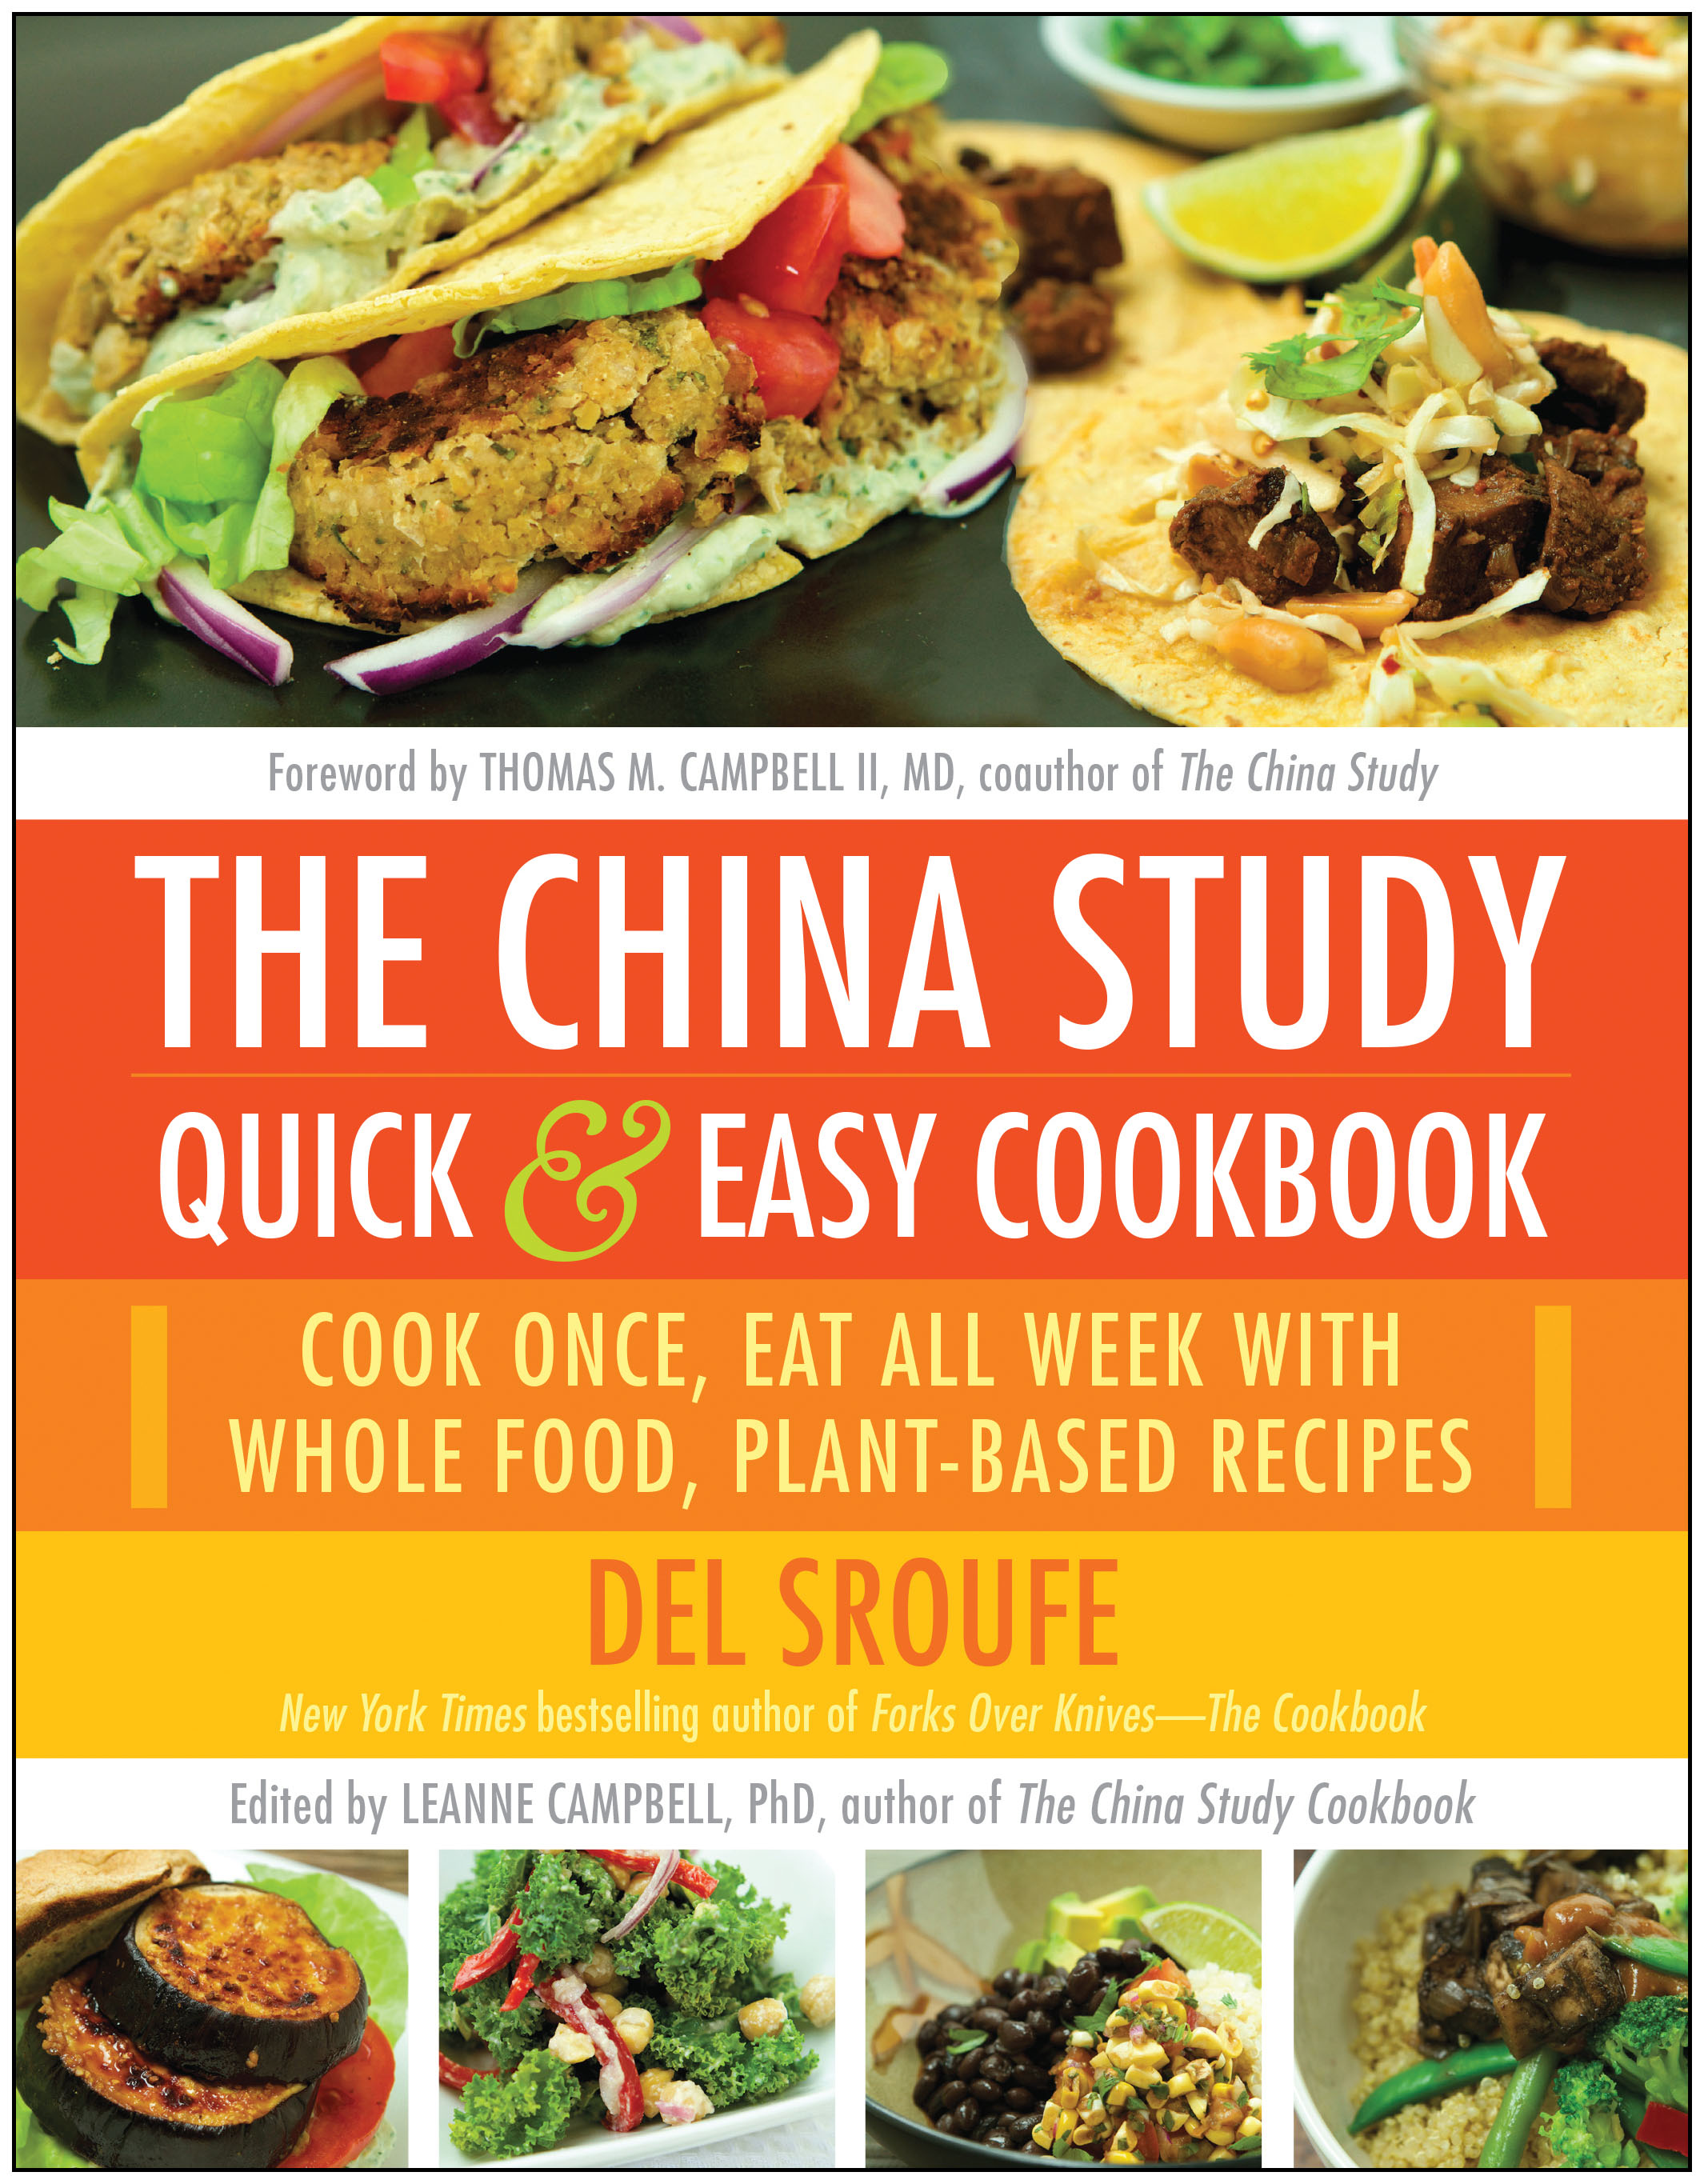 The china study quick easy cookbook newsouth books full size image forumfinder Images